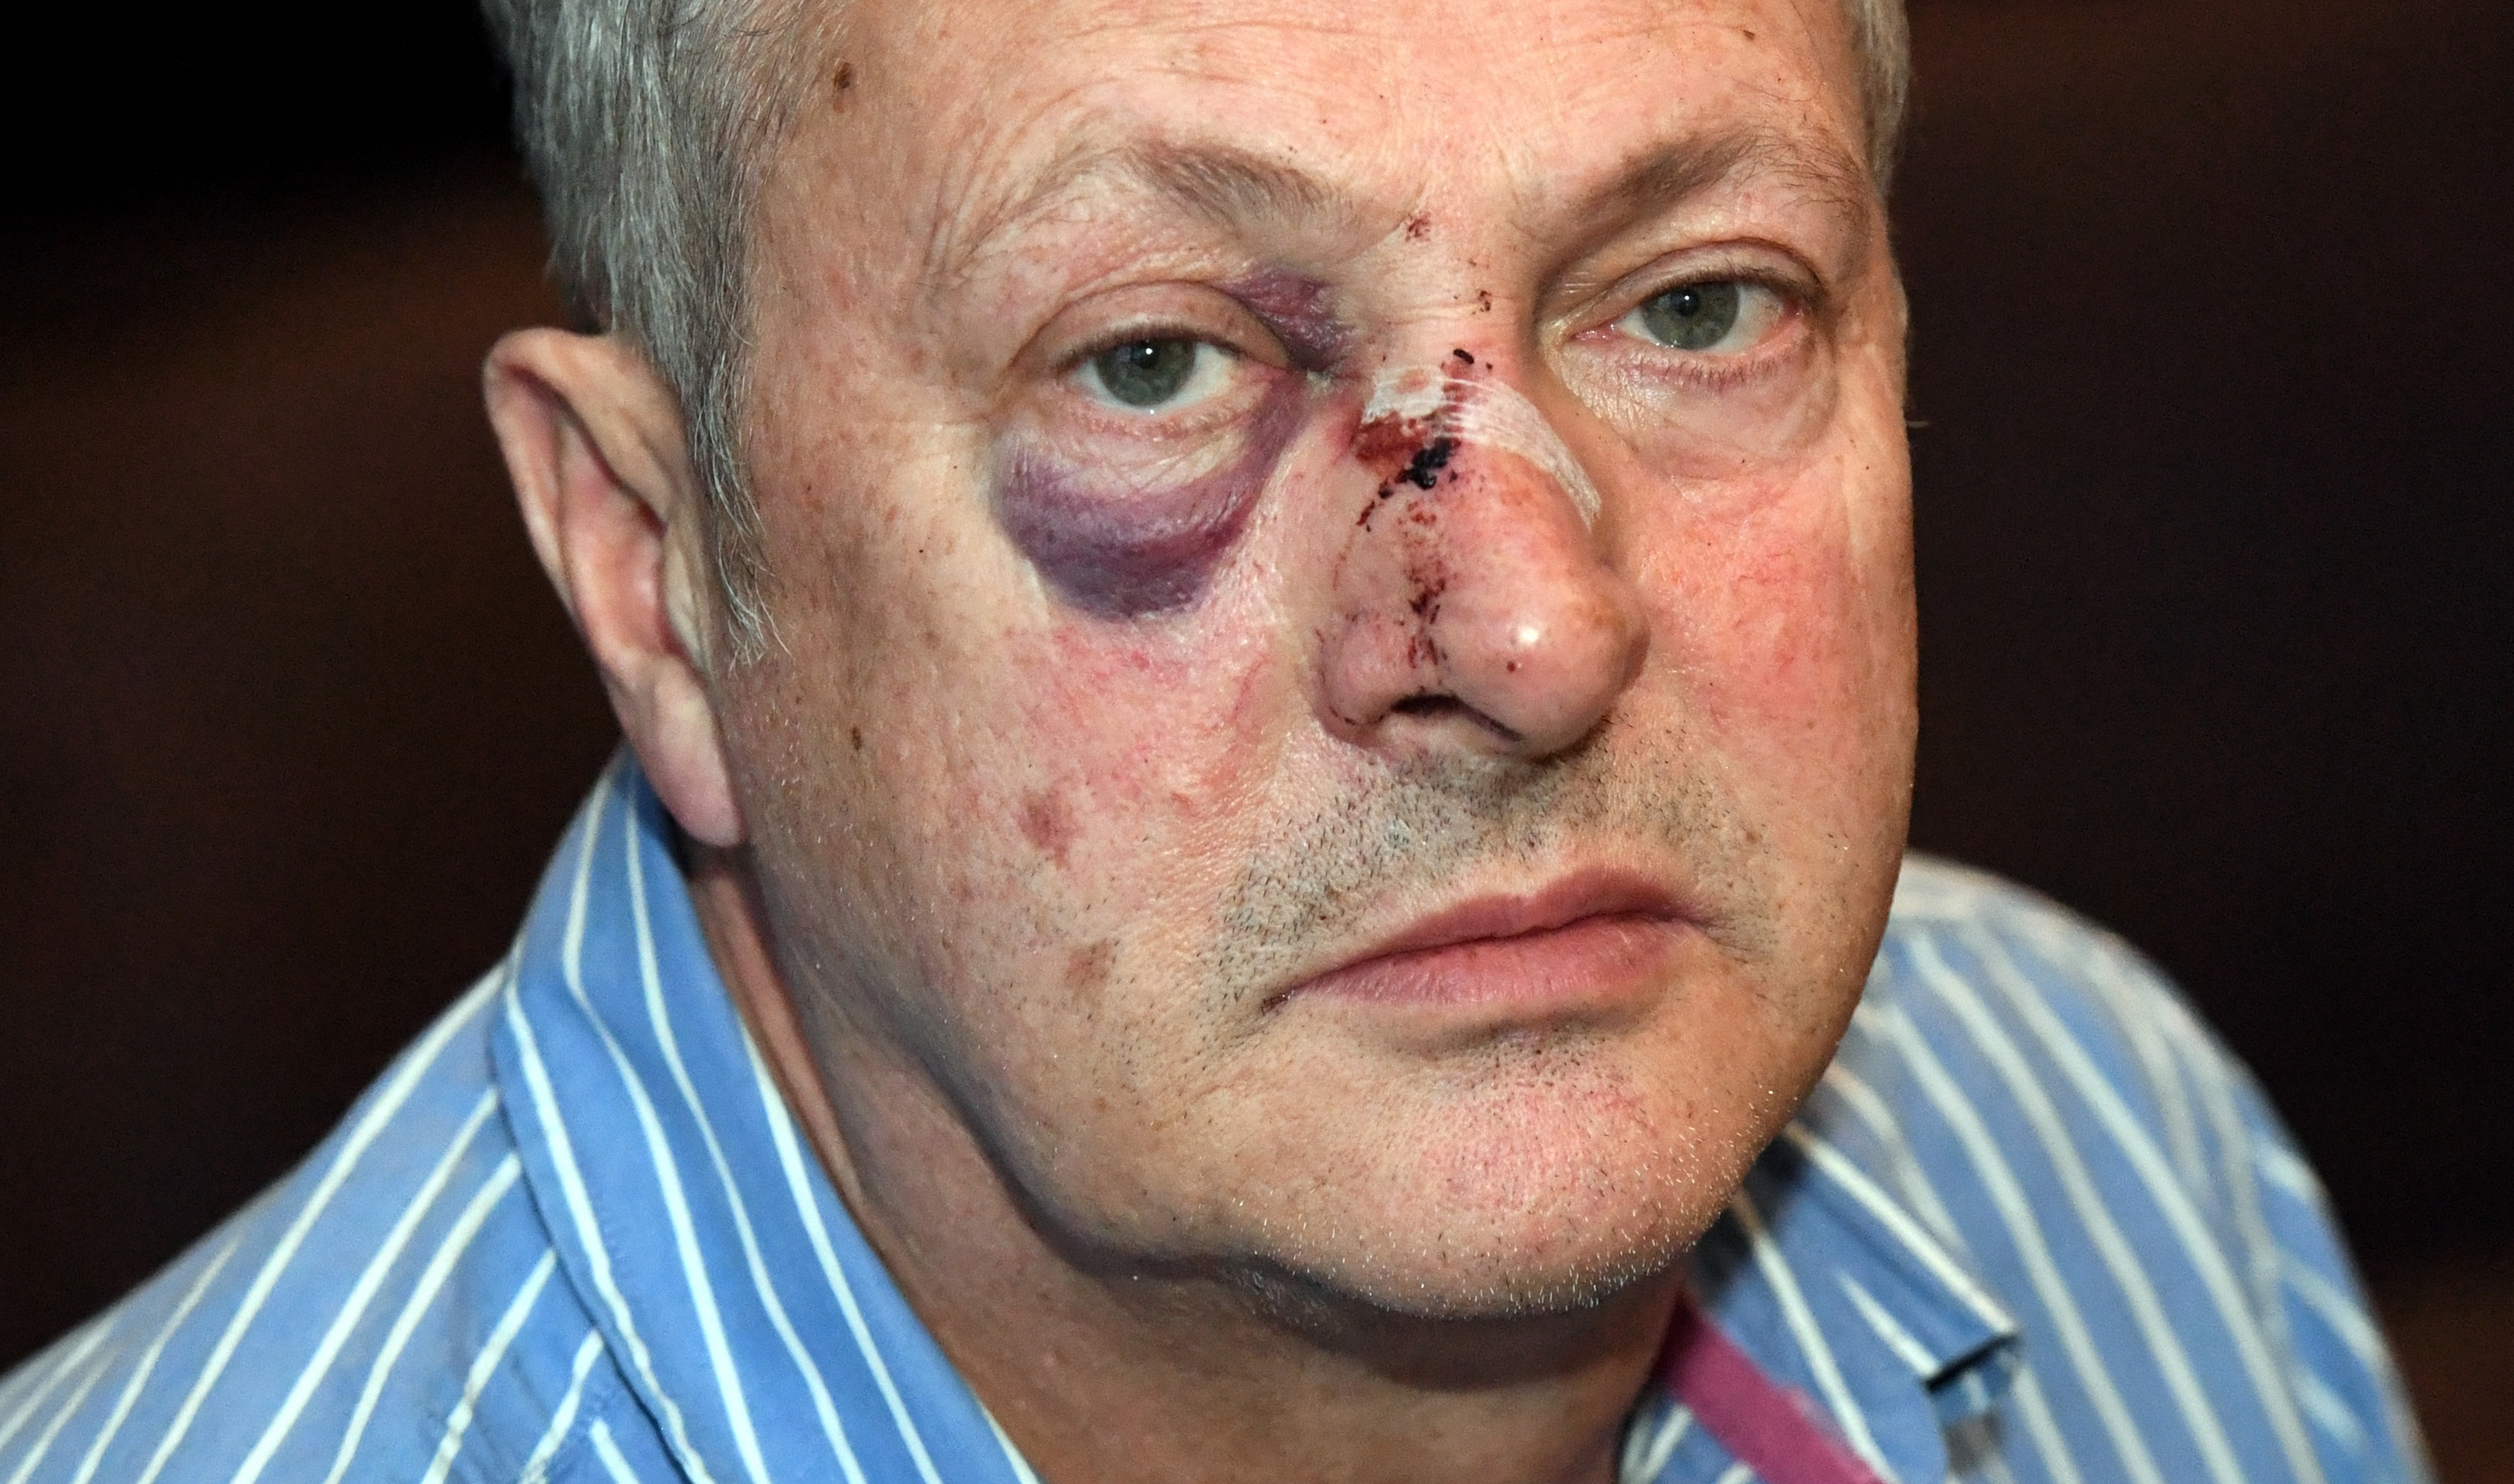 Chef Nick Nairn who was attacked on Union Street last night walking home from his cook school.